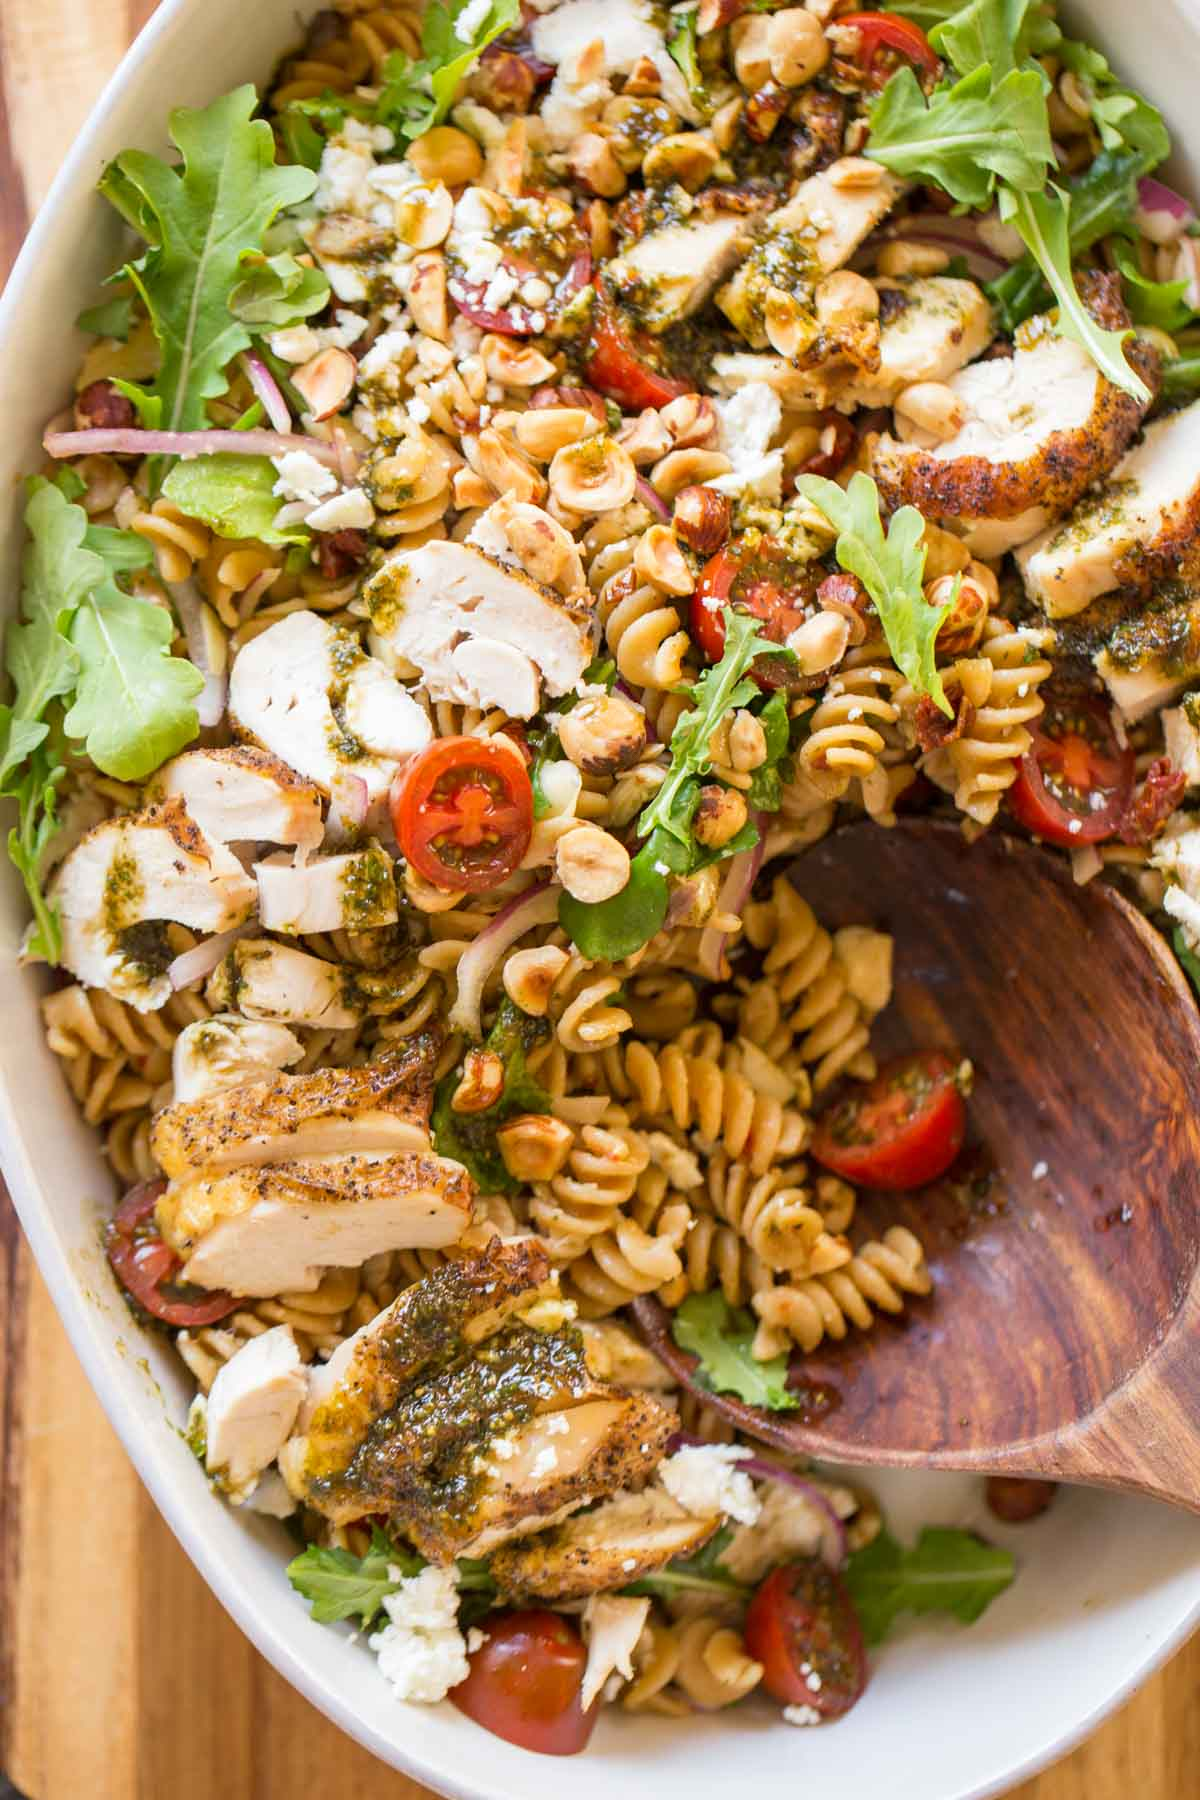 Whole Wheat Pasta Salad With Honey Basil Balsamic Vinaigrette in a large serving bowl with a wooden spoon in it.